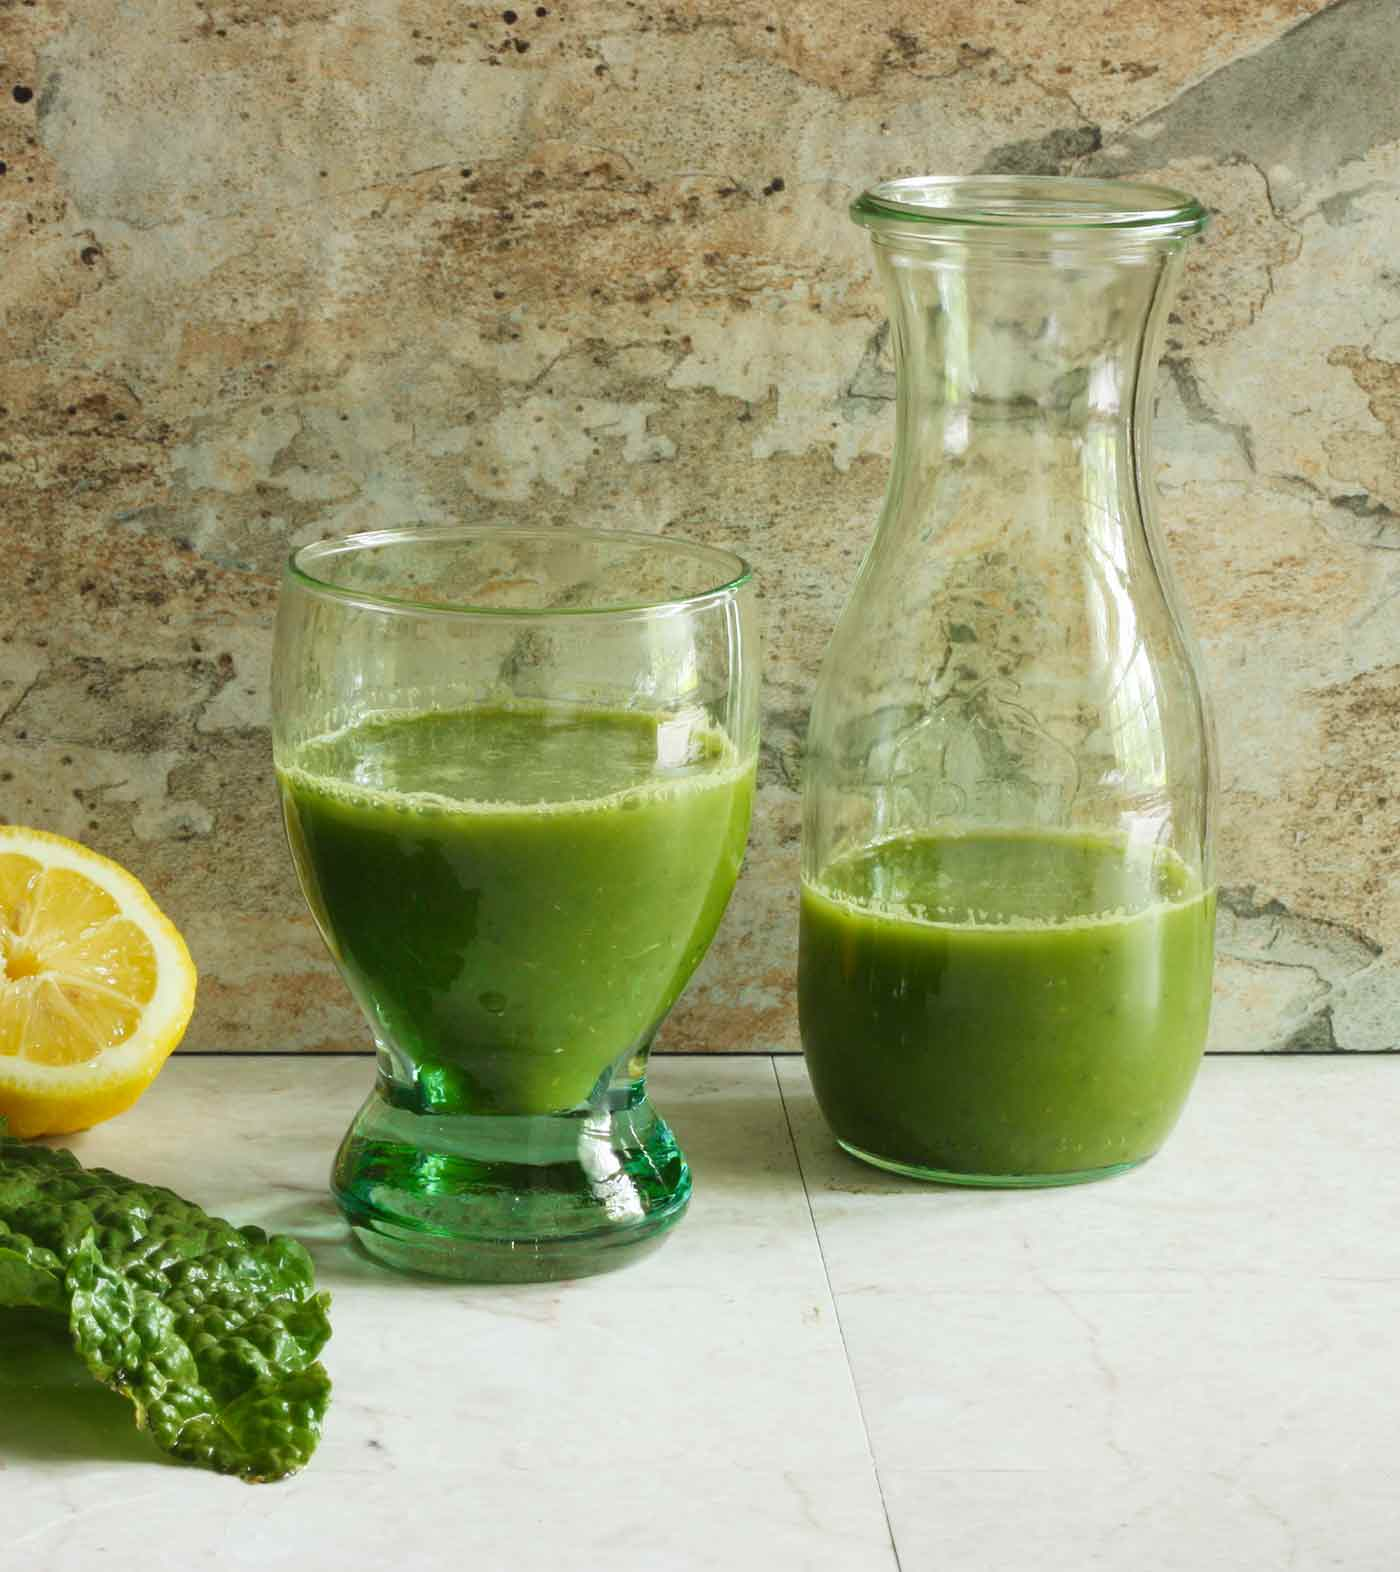 freshly pressed green juice in a glass and a carafe